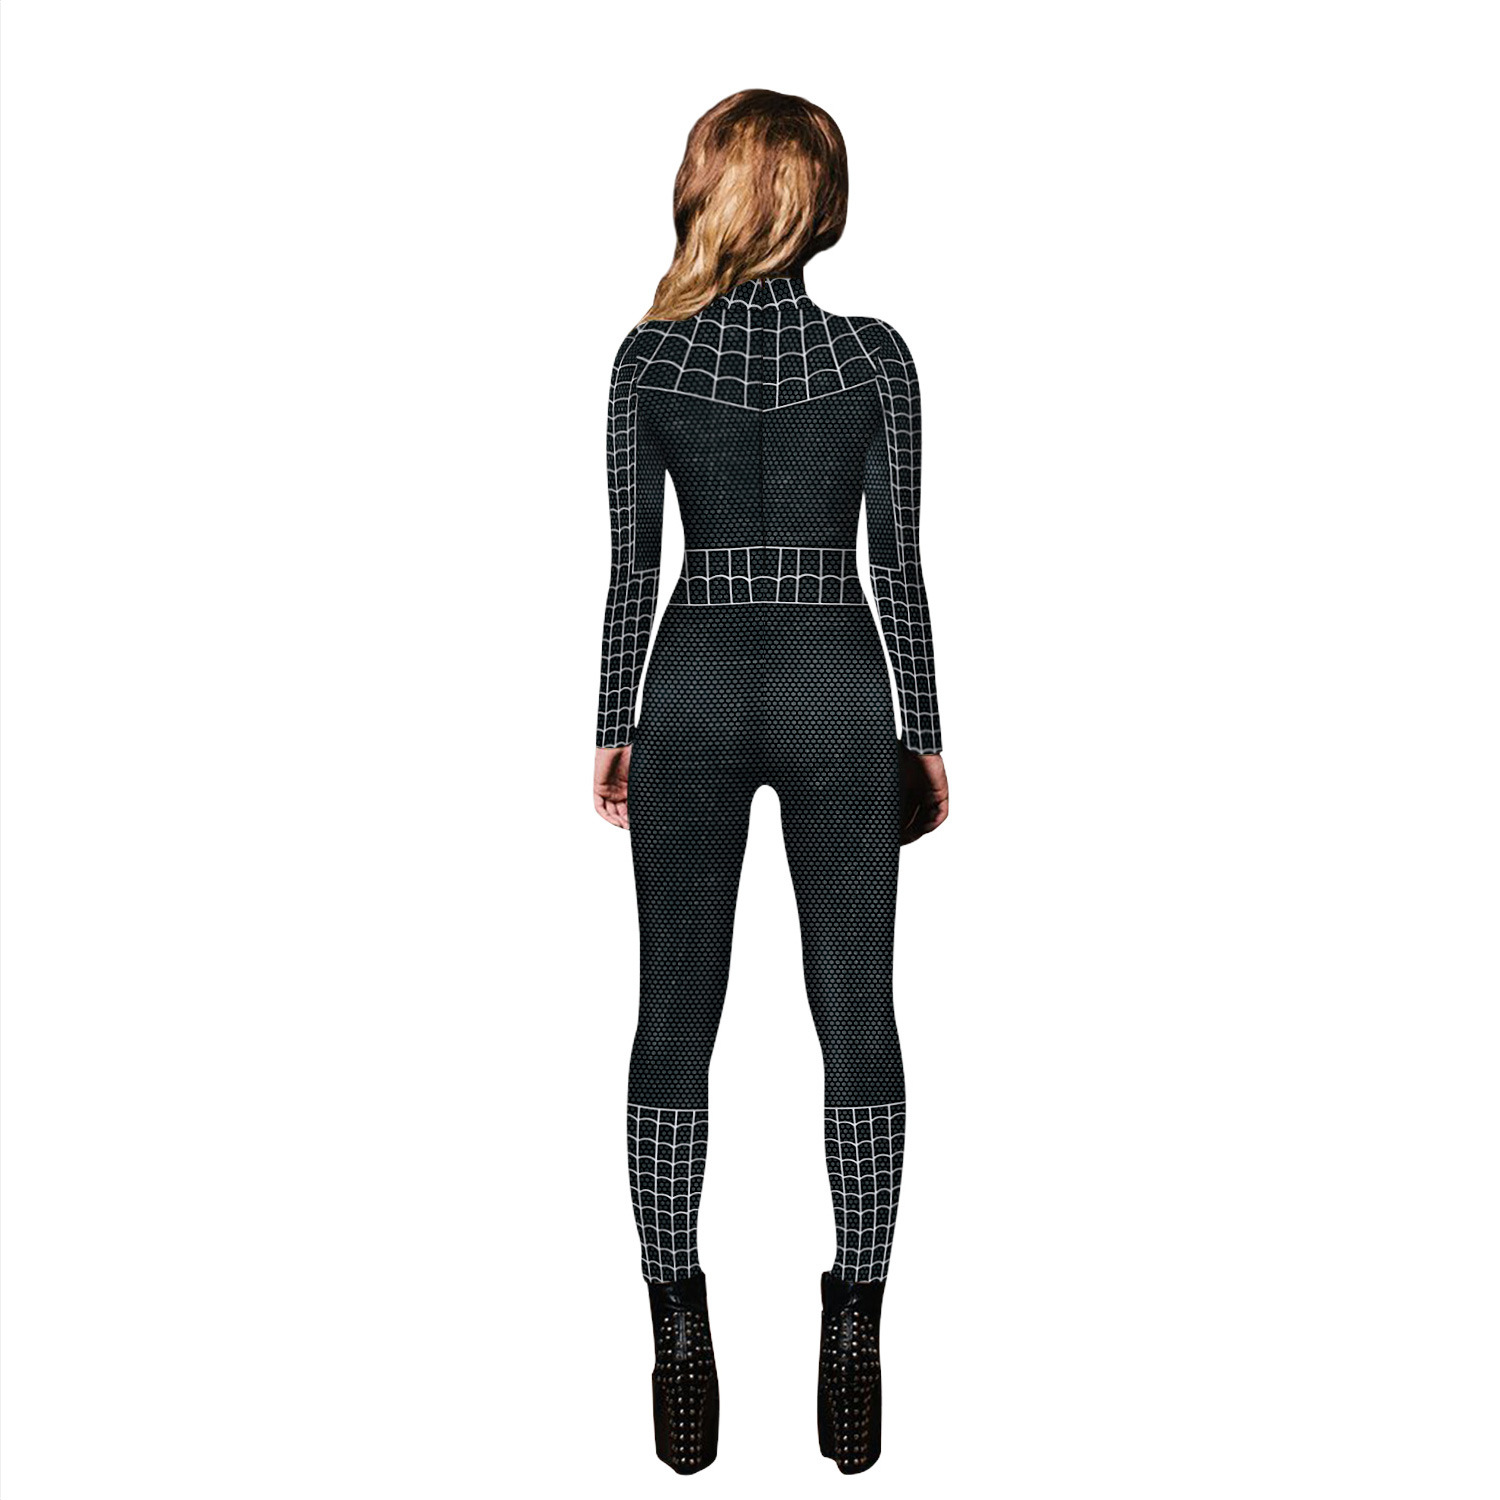 VIP FASHION 2020 New Cosplay 3D Black Spider Printed Super hero Costume Women Movie Cosplay Bodysuit For Women